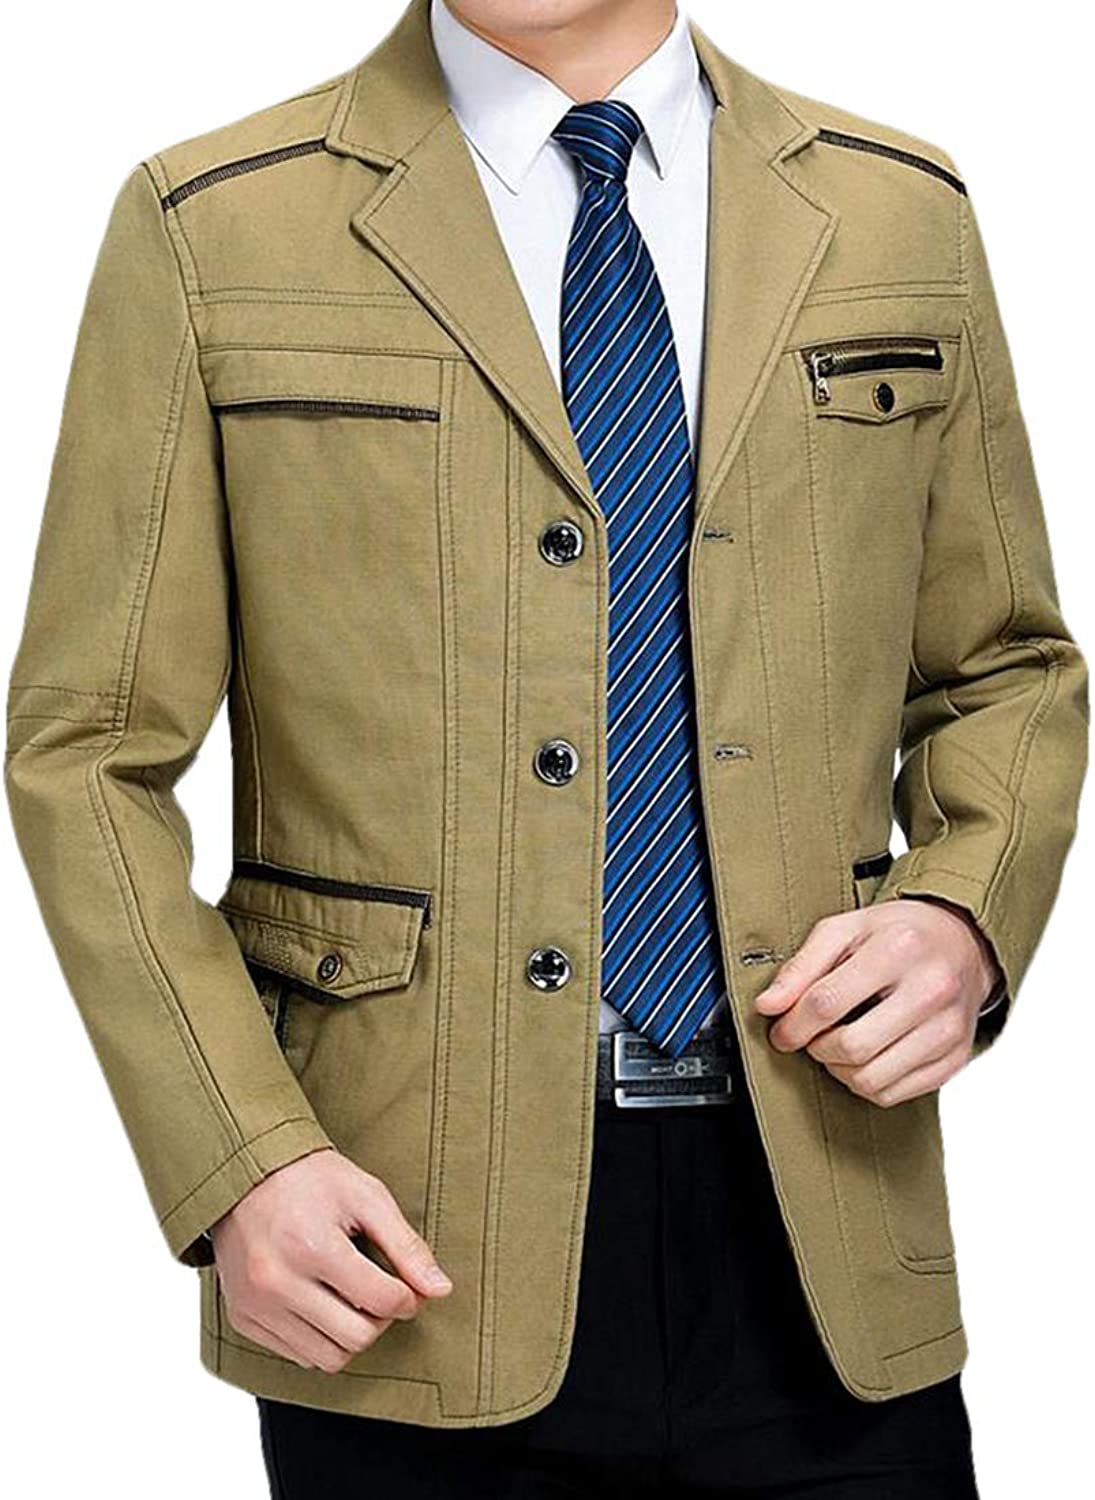 Jofemuho Mens Double Breasted Thermal Plus Size Lamb Wool Lined Lapel Neck Down Coat Jacket Outerwear